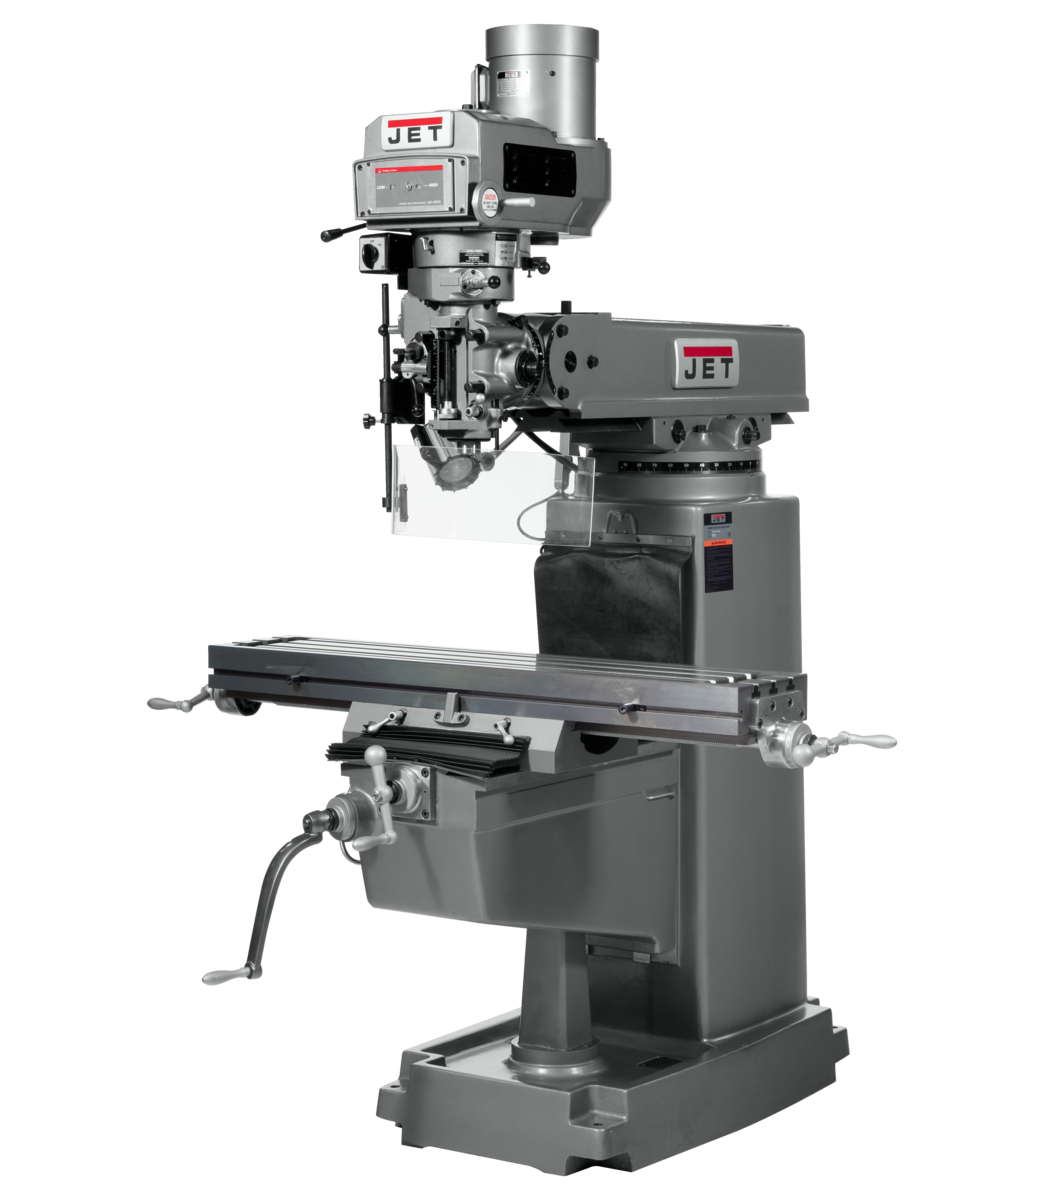 JTM-1050VS2 Mill With ACU-RITE 203 DRO With X-Axis Powerfeed